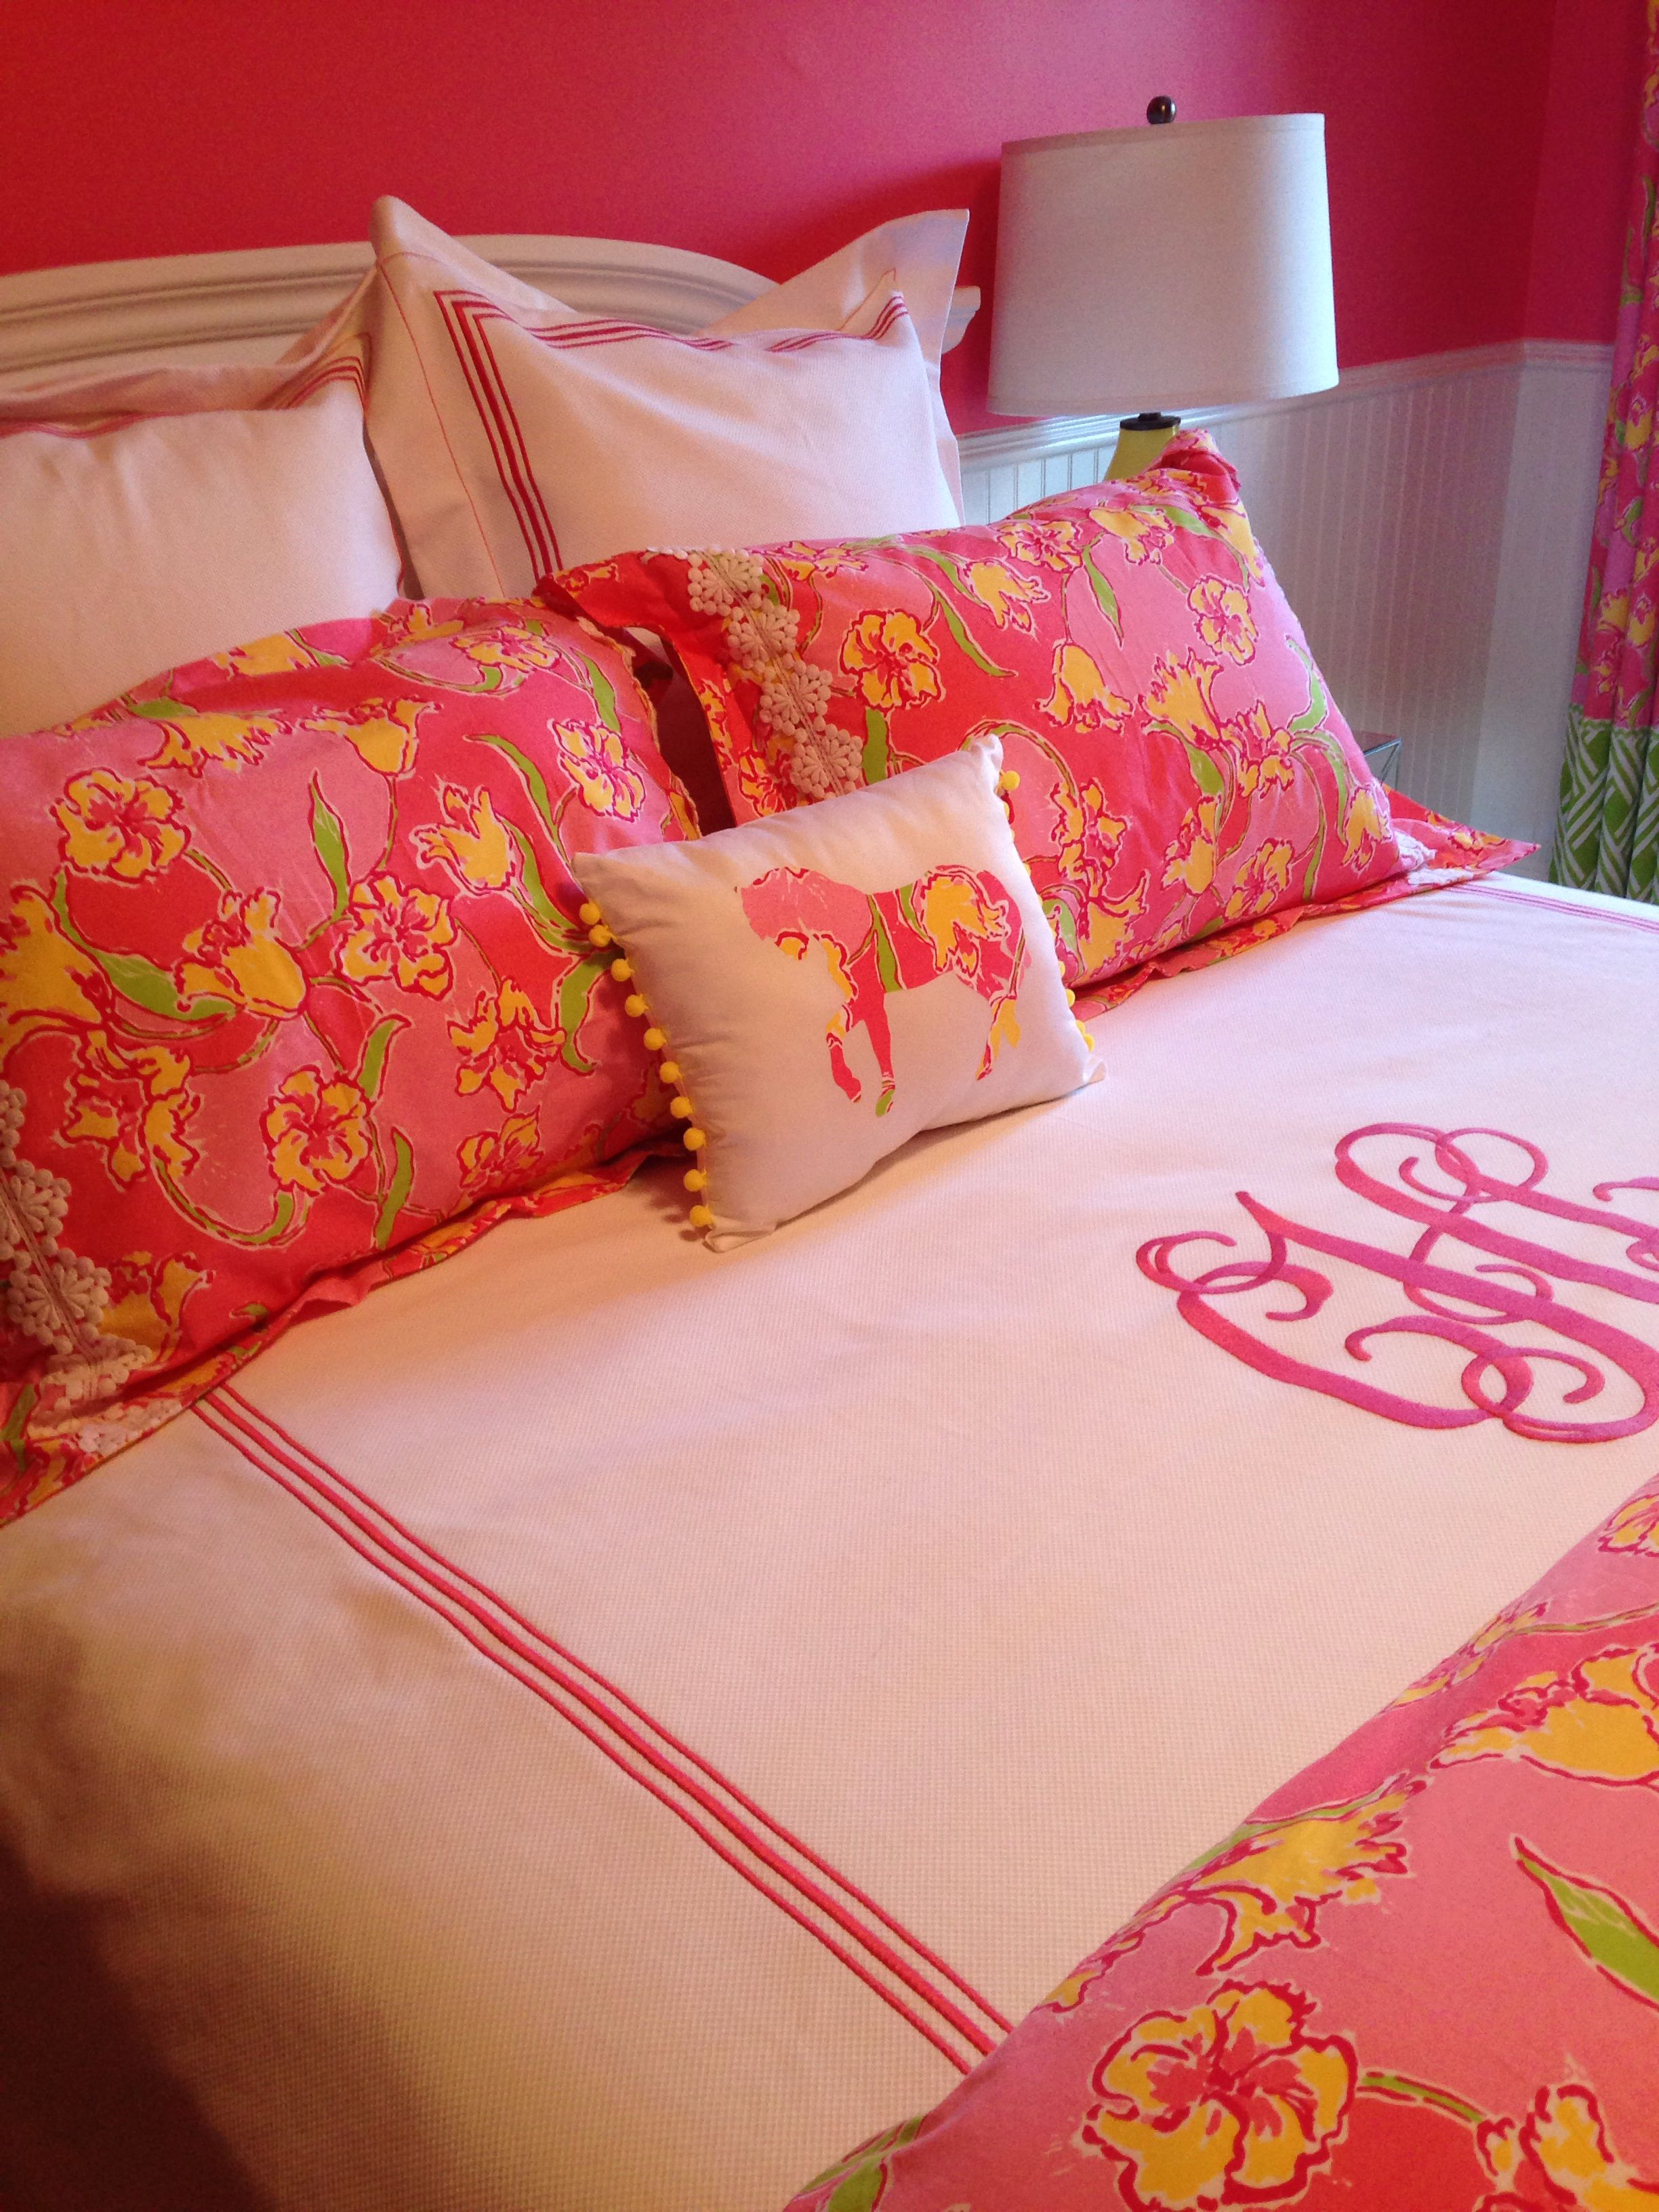 of in suite lilly pulitzer and bed inn bedding courtesy rhode champagne photos the watch summer hill